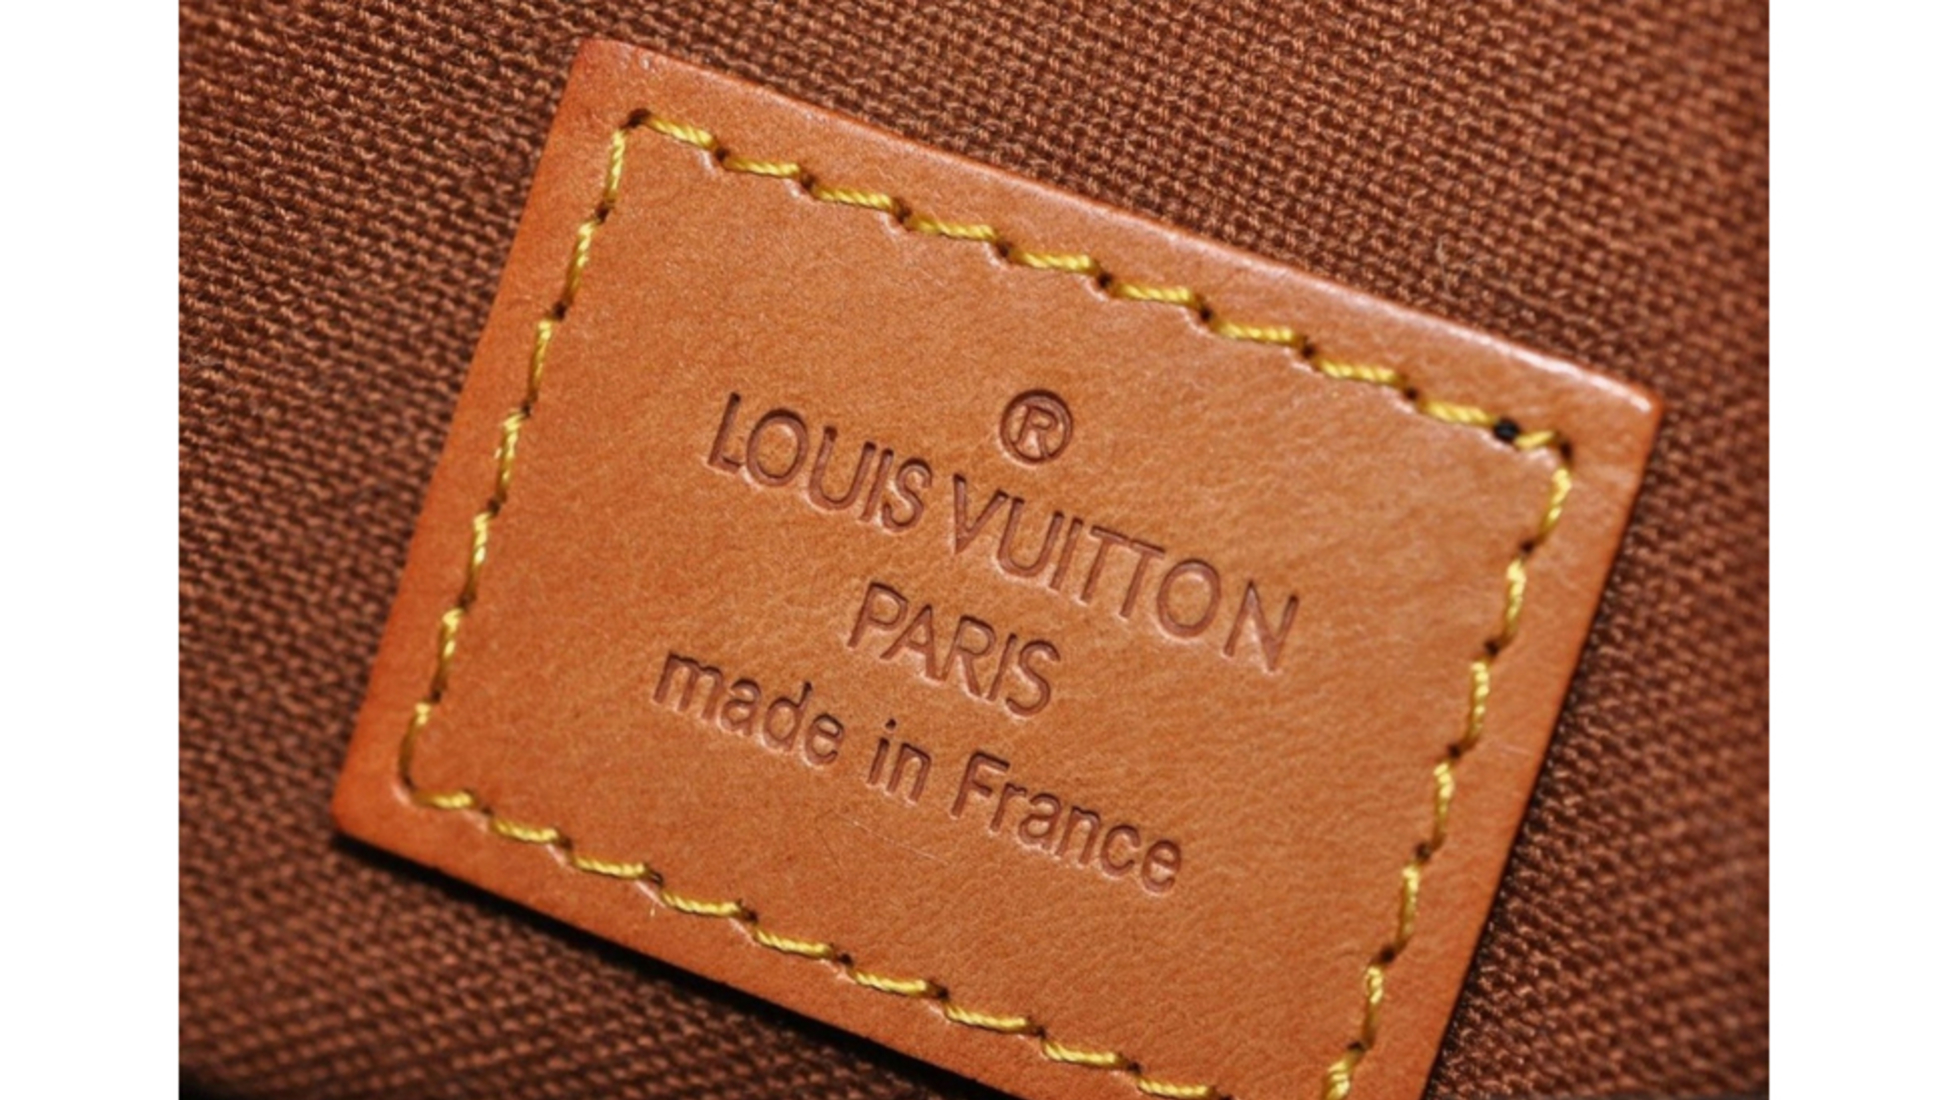 Louis Vuitton Made In France >> Expert S Guide To Buying An Authentic Louis Vuitton Handbag